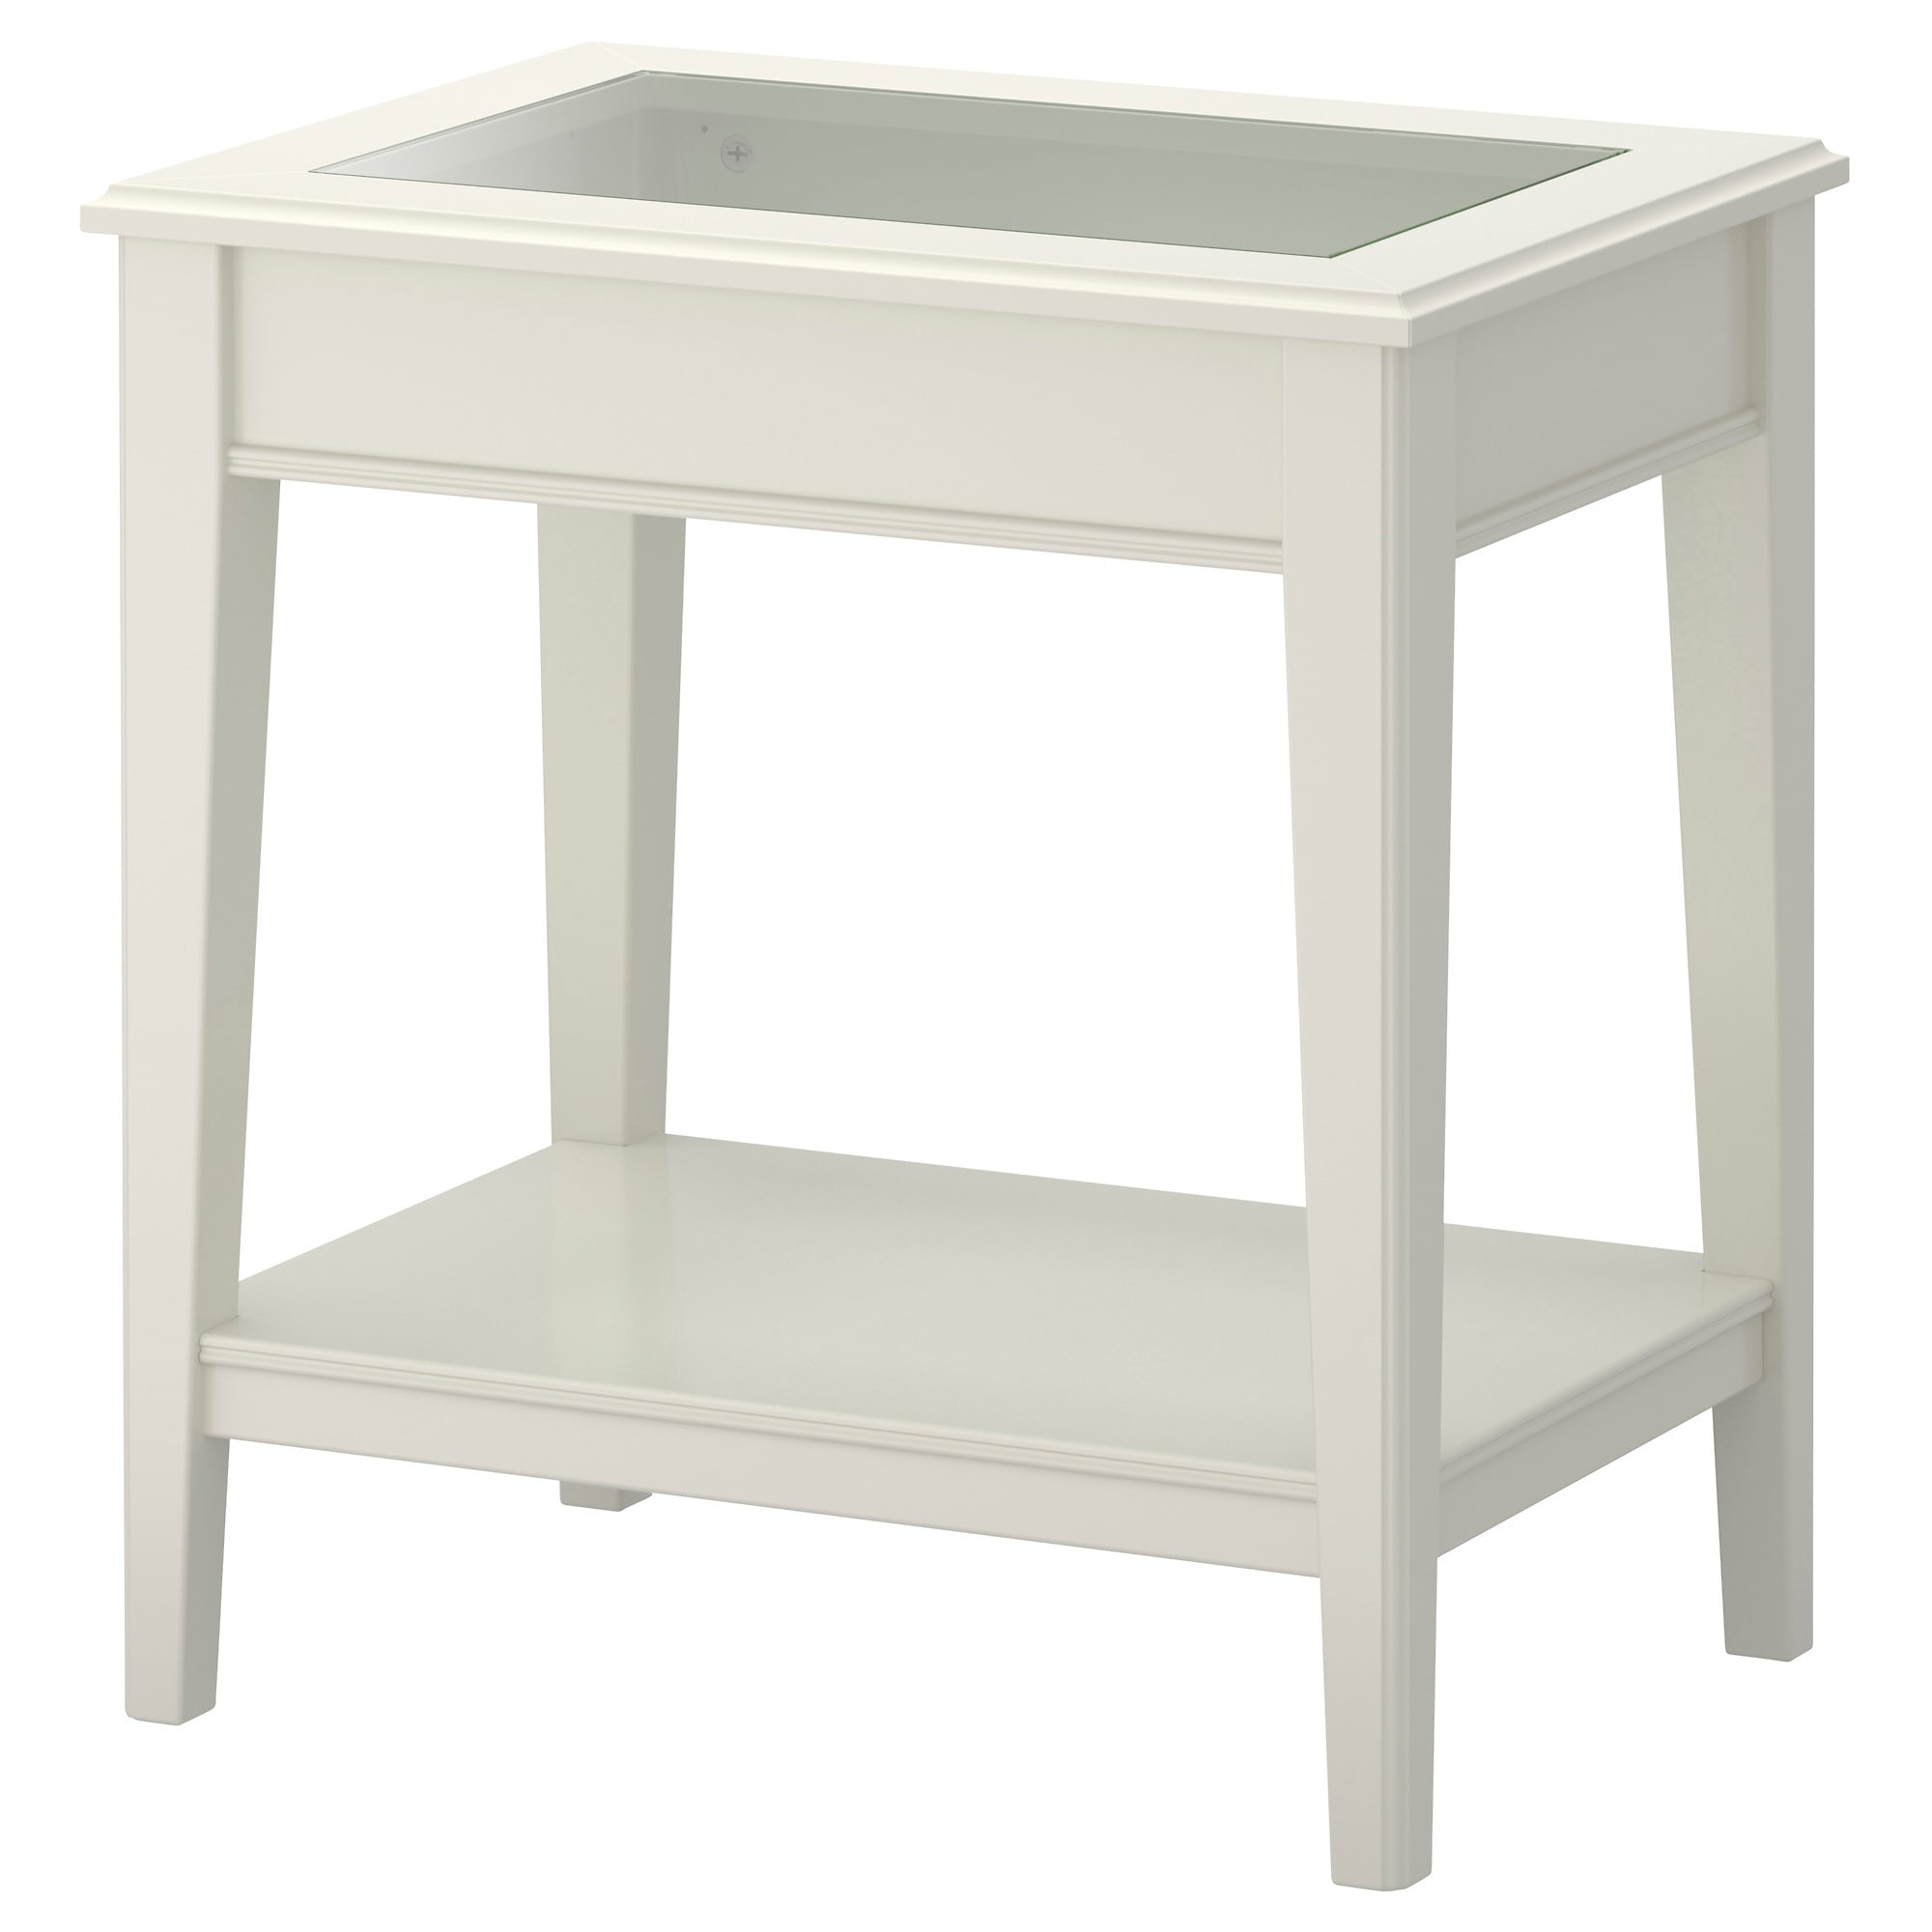 occasional tables tray storage window ikea liatorp side table white glass small accent top outdoor coffee large circular tablecloths industrial round contemporary wood furniture